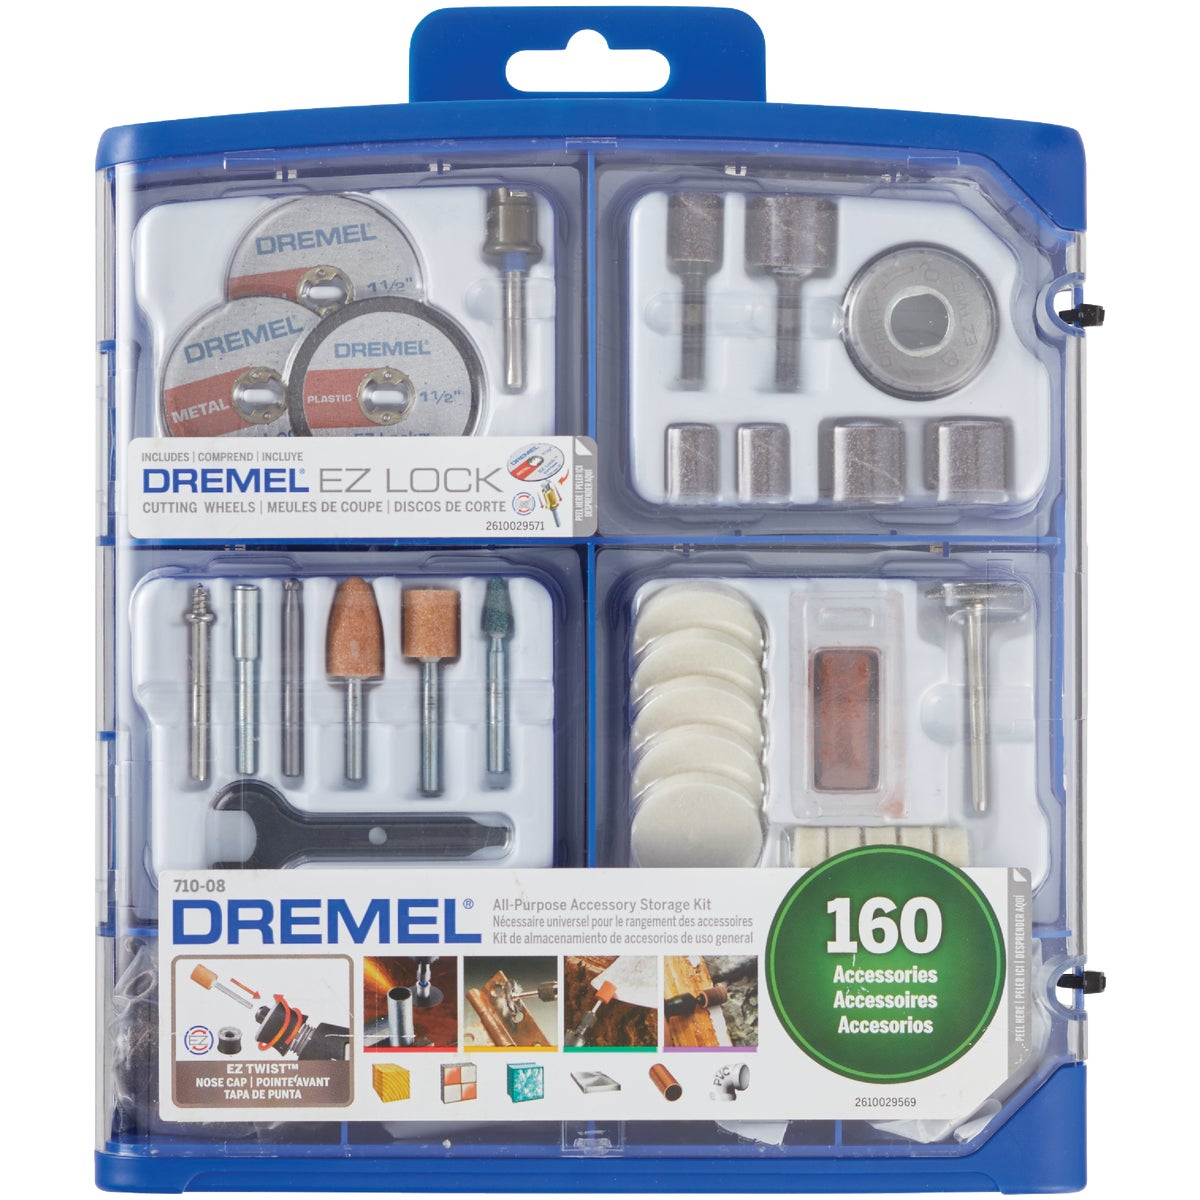 160PC MEGA ACCESSORY KIT - 710-08 by Dremel Mfg Co